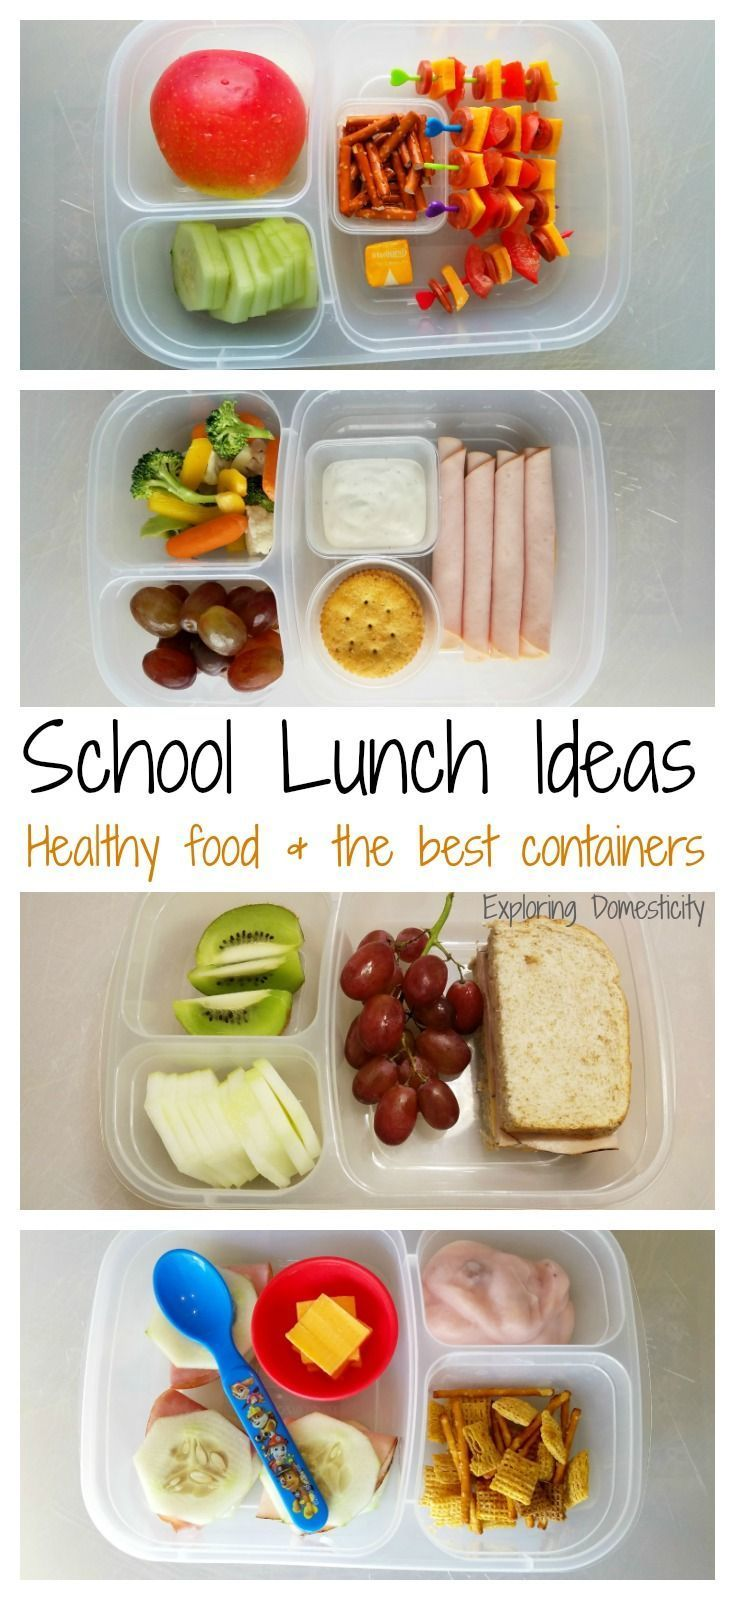 School Lunch Ideas: healthy food and the best containers #schoollunches #healthylunches #lunches #kidsfood #kidsmeals